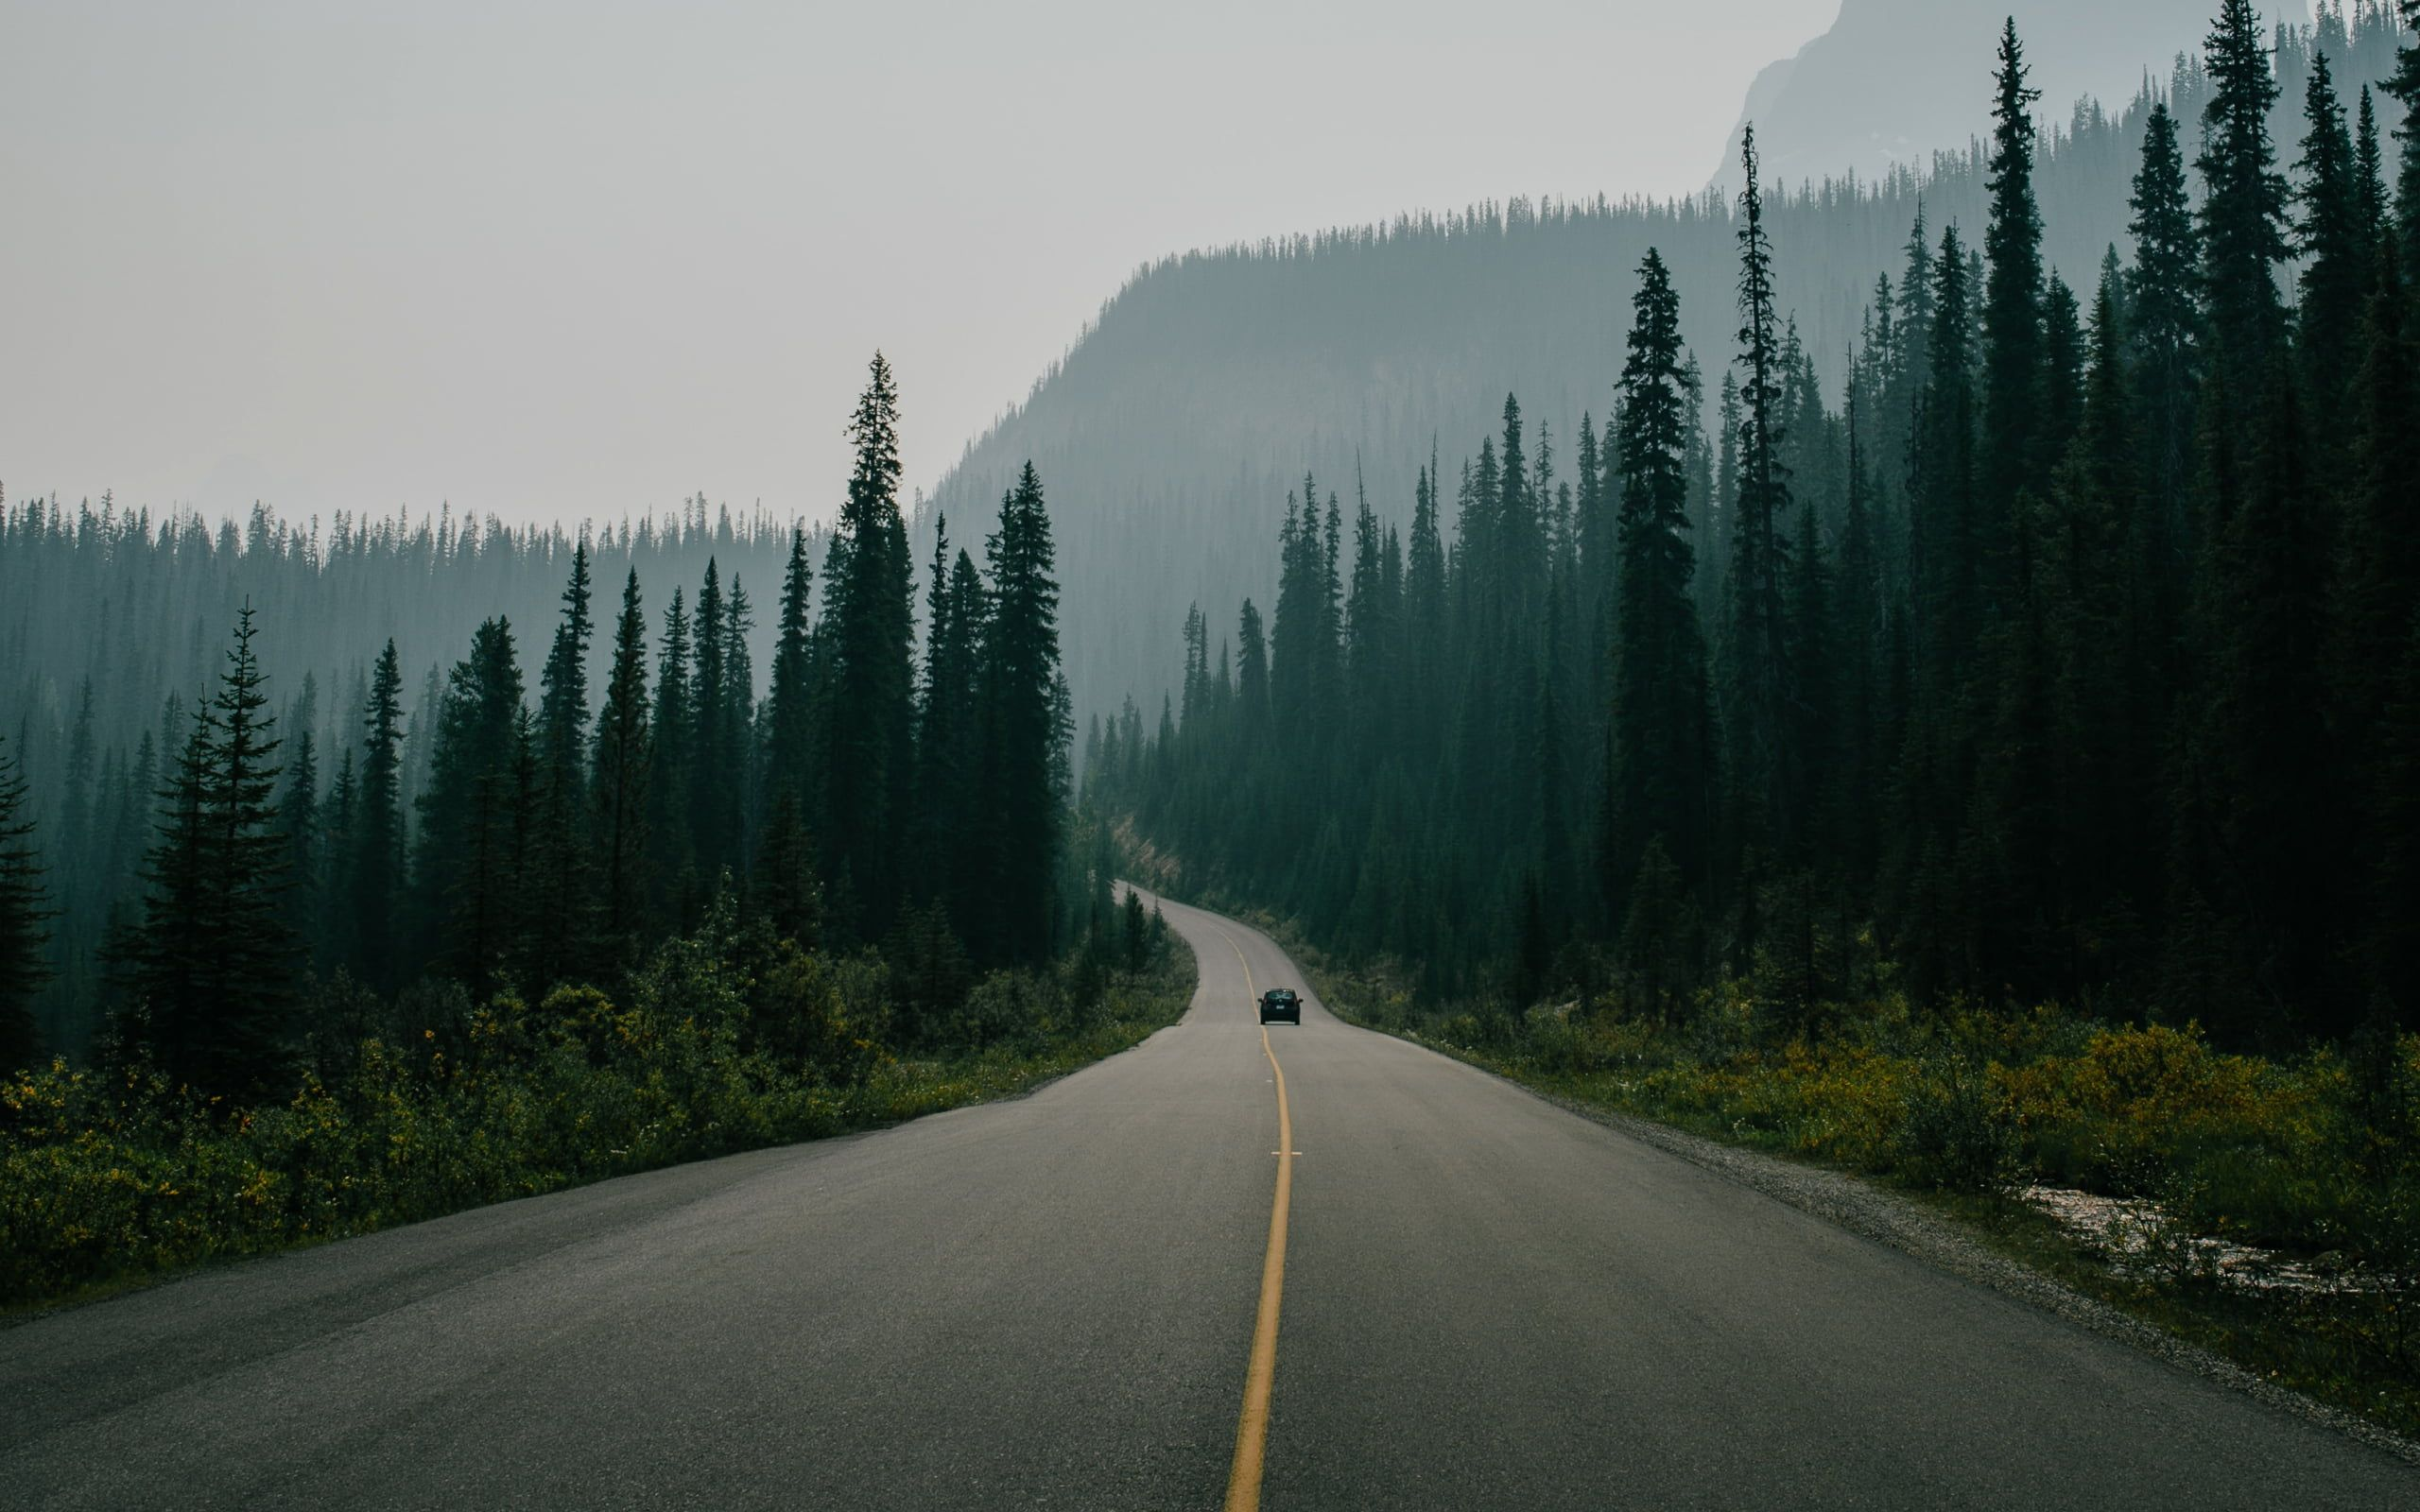 Road Surrounded With Trees Nature Landscape Road Trees Car Pine Trees Forest Morn In 2020 Landscape Wallpaper Tree Desktop Wallpaper Aesthetic Desktop Wallpaper